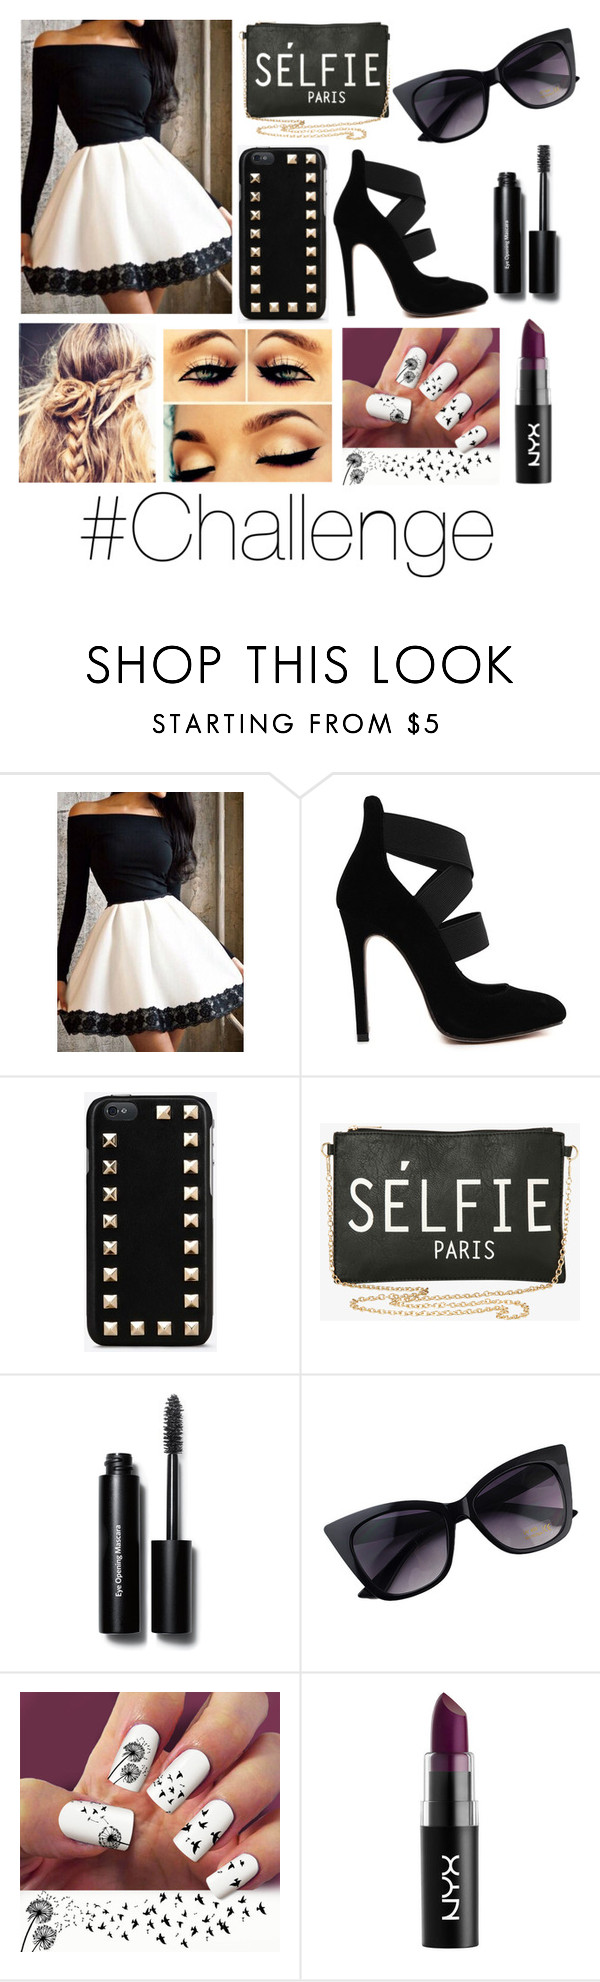 """""""@paris8484 challenge! RTD"""" by happinesspeaceandlove ❤ liked on Polyvore featuring Valentino, Torrid and Bobbi Brown Cosmetics"""